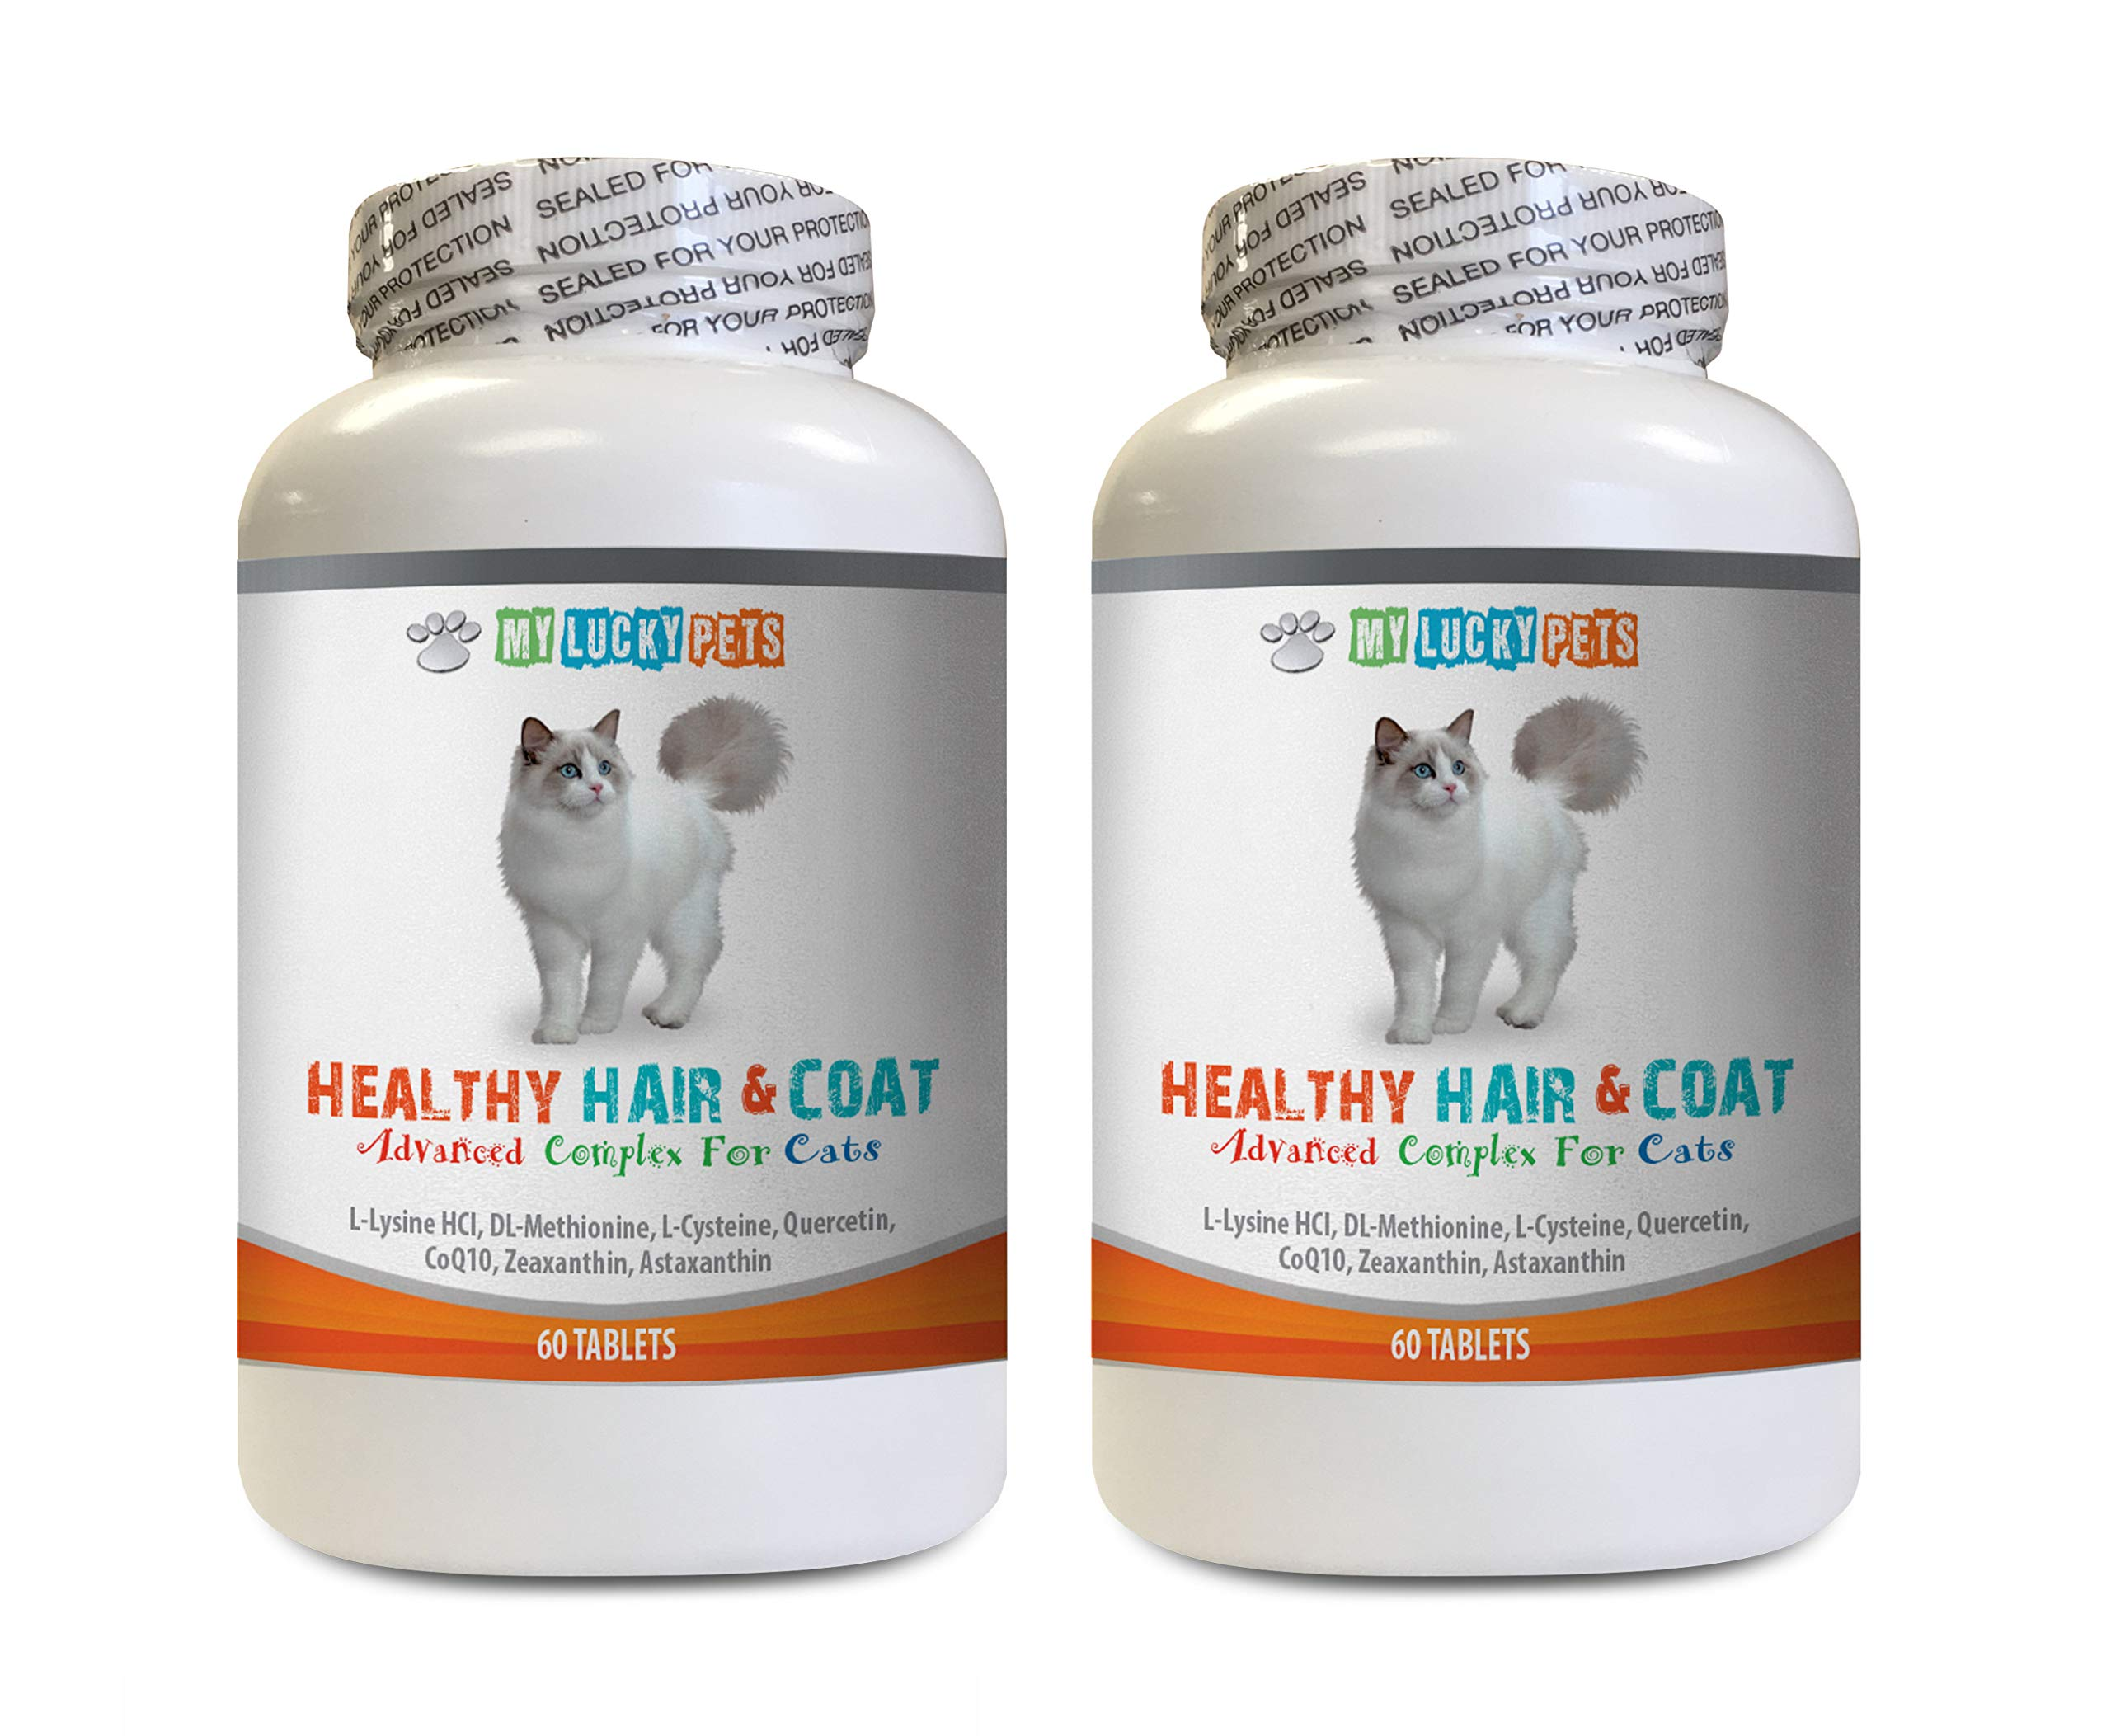 MY LUCKY PETS LLC Dry Skin Care for Cats - Cats Healthy Hair and Coat - Good Immune Response - Nail Health - Shiny Coat - cat Vitamins Senior - 2 Bottles (120 Tablets) by MY LUCKY PETS LLC